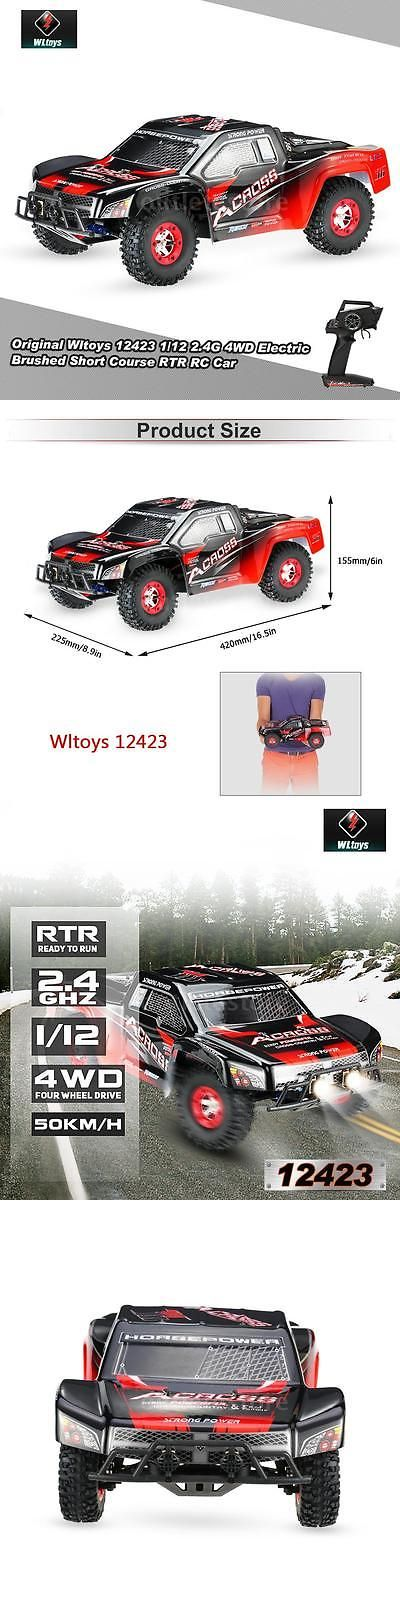 Cars Trucks and Motorcycles 182183: Gift Wltoys 12423 1 12 2.4G 4Wd Electric Brushed Short Course Rtr Rc Car Us Plug -> BUY IT NOW ONLY: $57.85 on eBay!